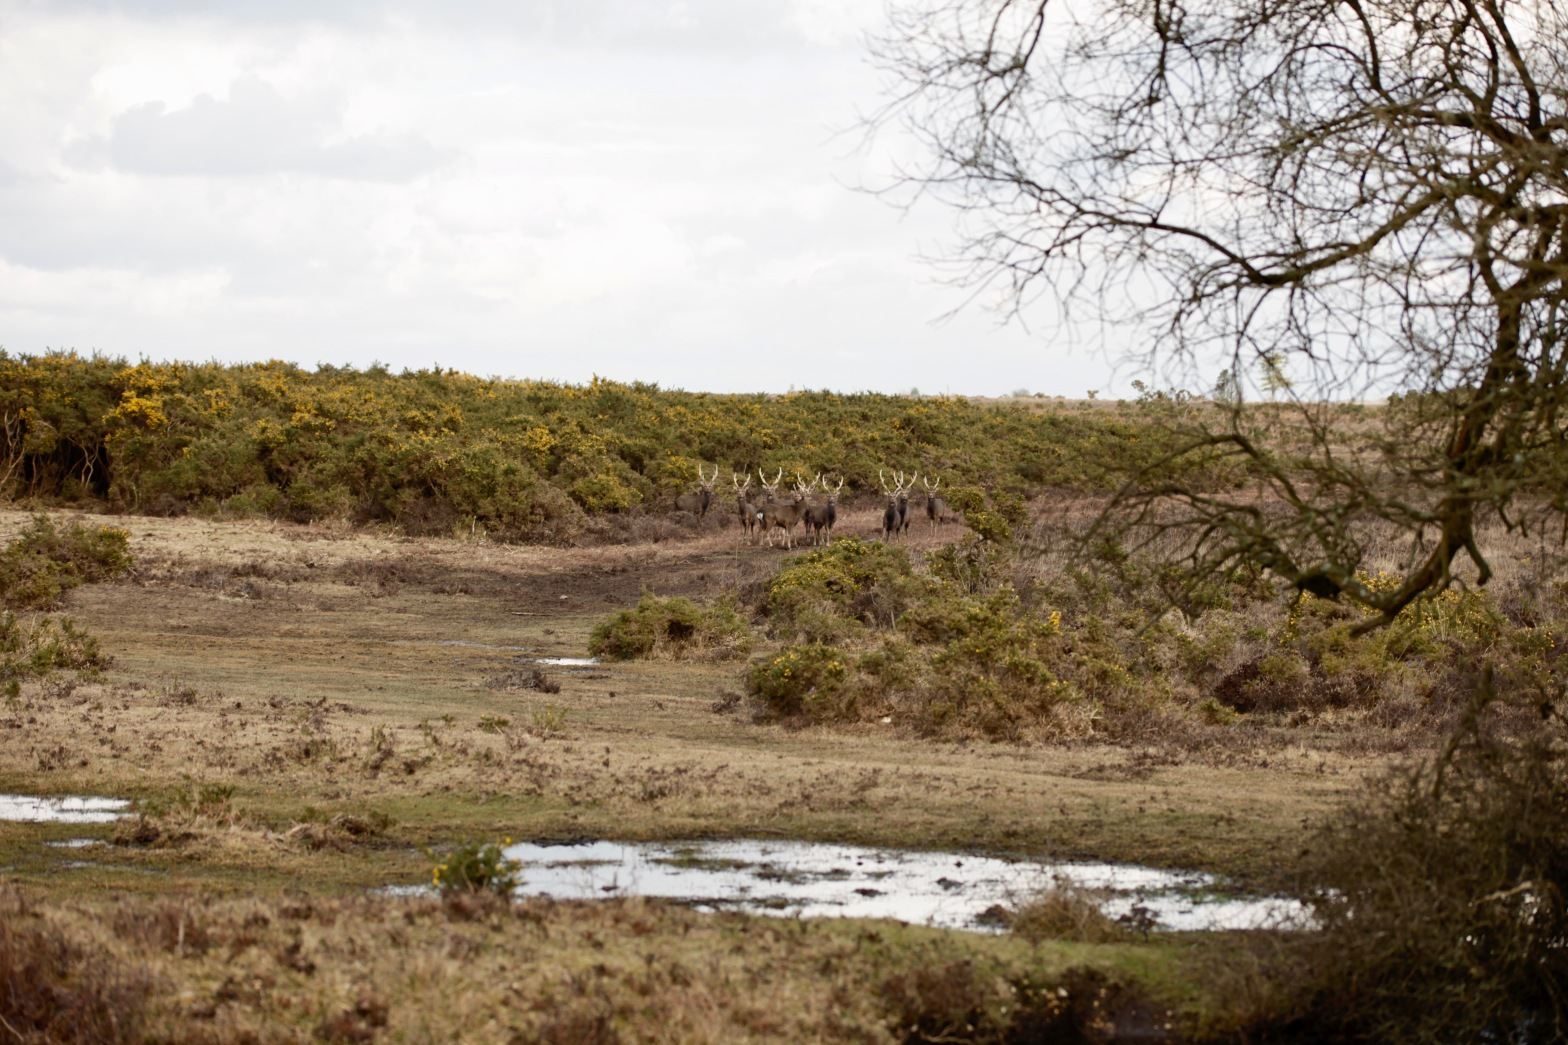 Stags in landscape 2